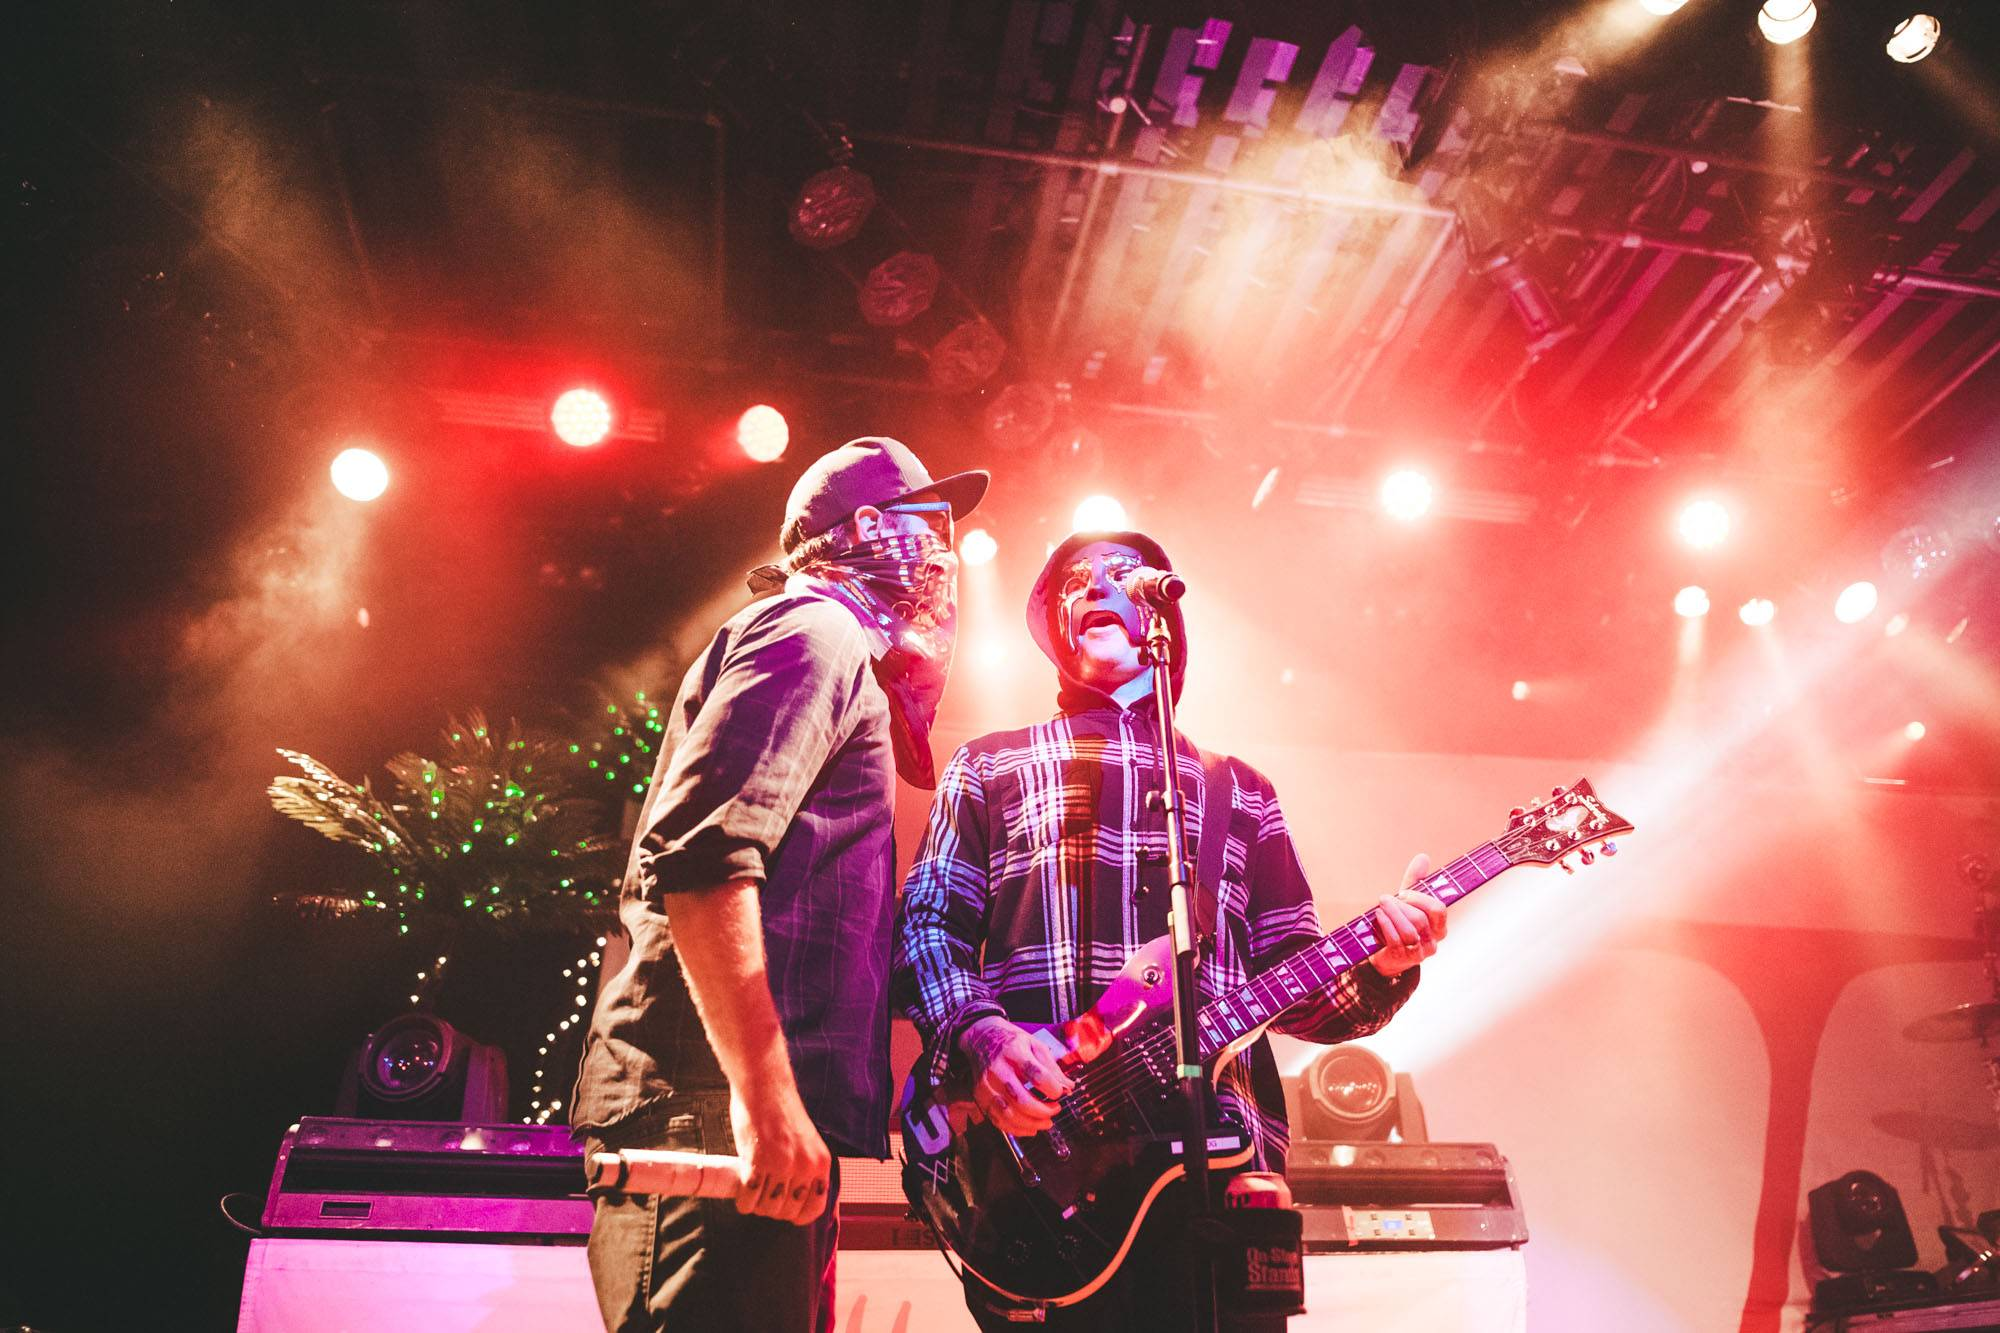 Hollywood Undead at the Commodore Ballroom, Vancouver, Nov 2 2017. Kelli Anne photo.